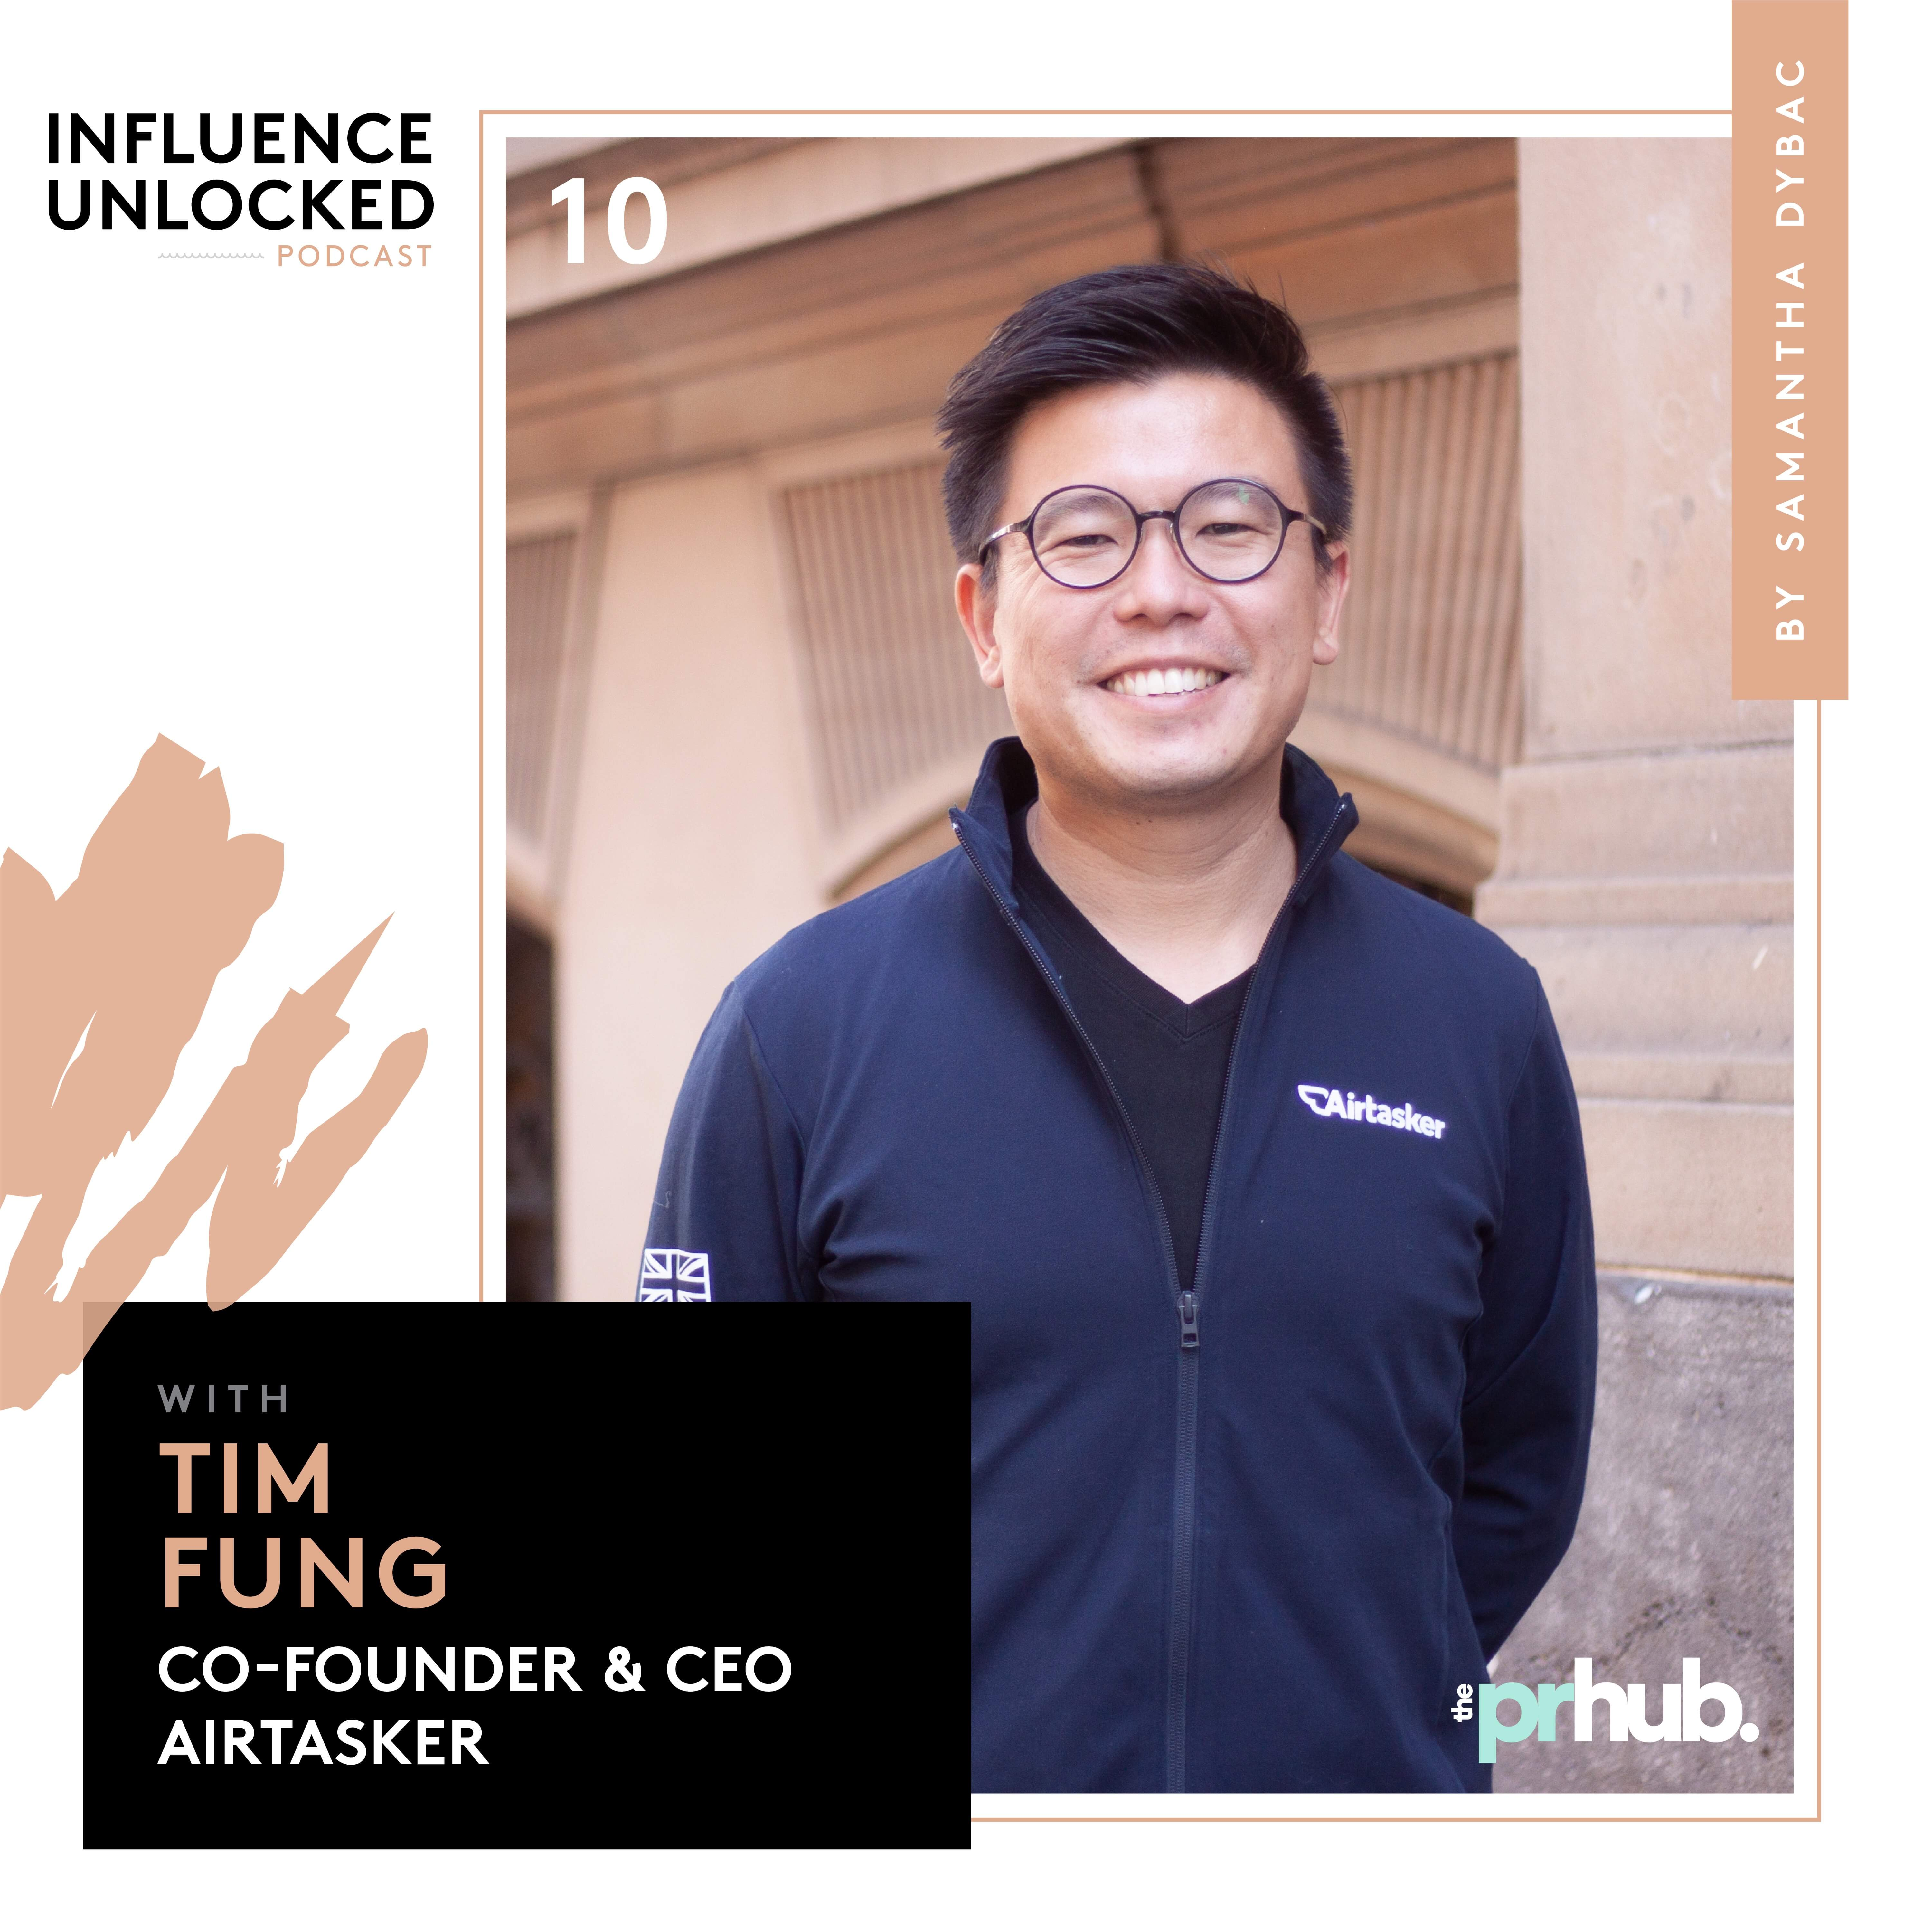 Tim Fung - Airtasker-Man-who-saved-us-from-helping-our-friends-move